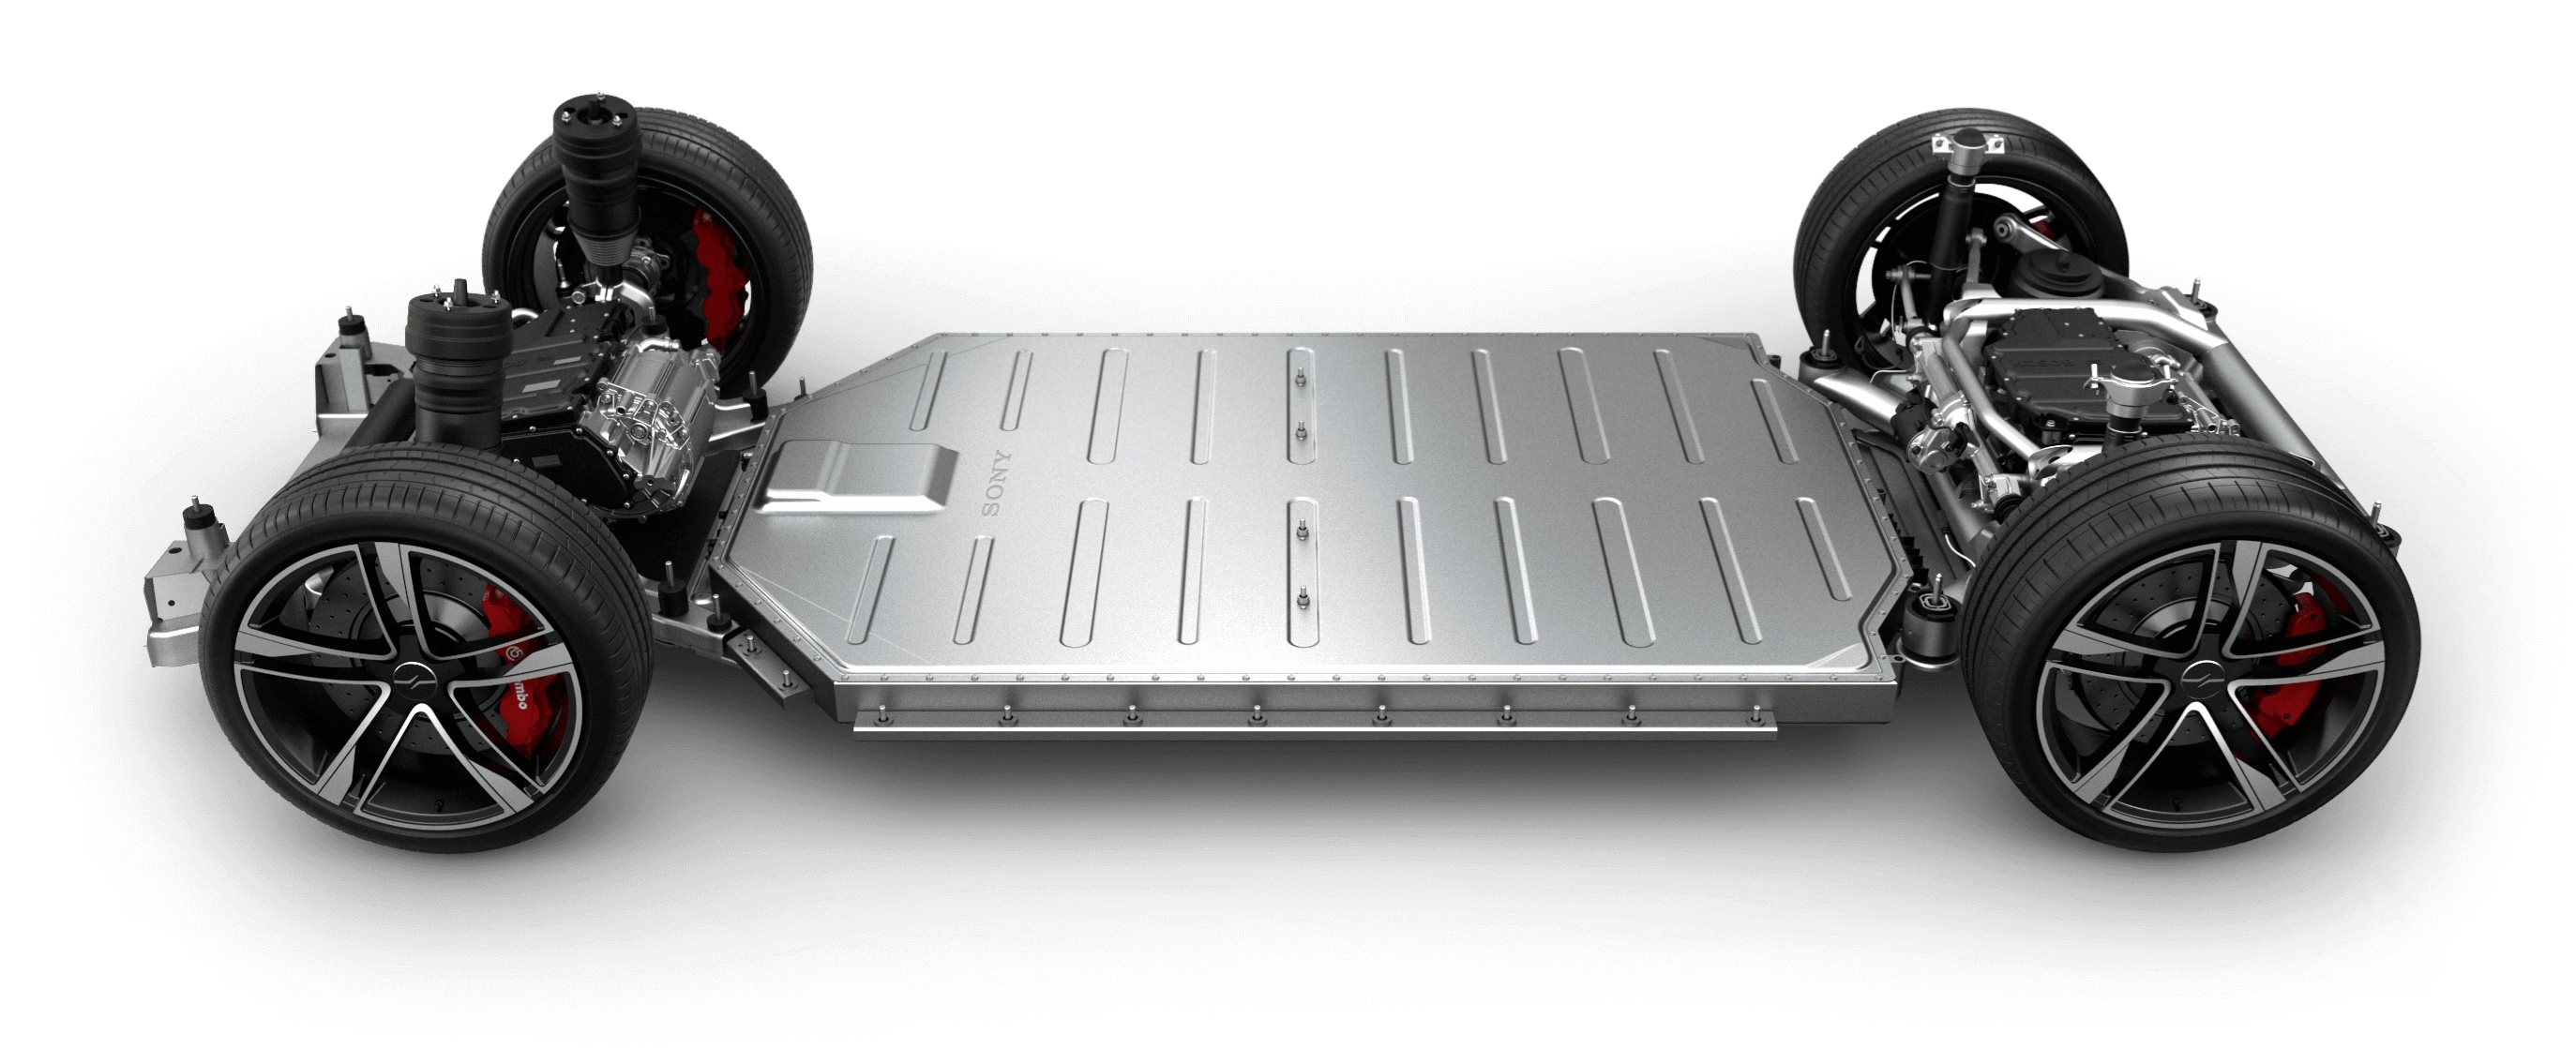 Electric vehicle platform 'skateboard'